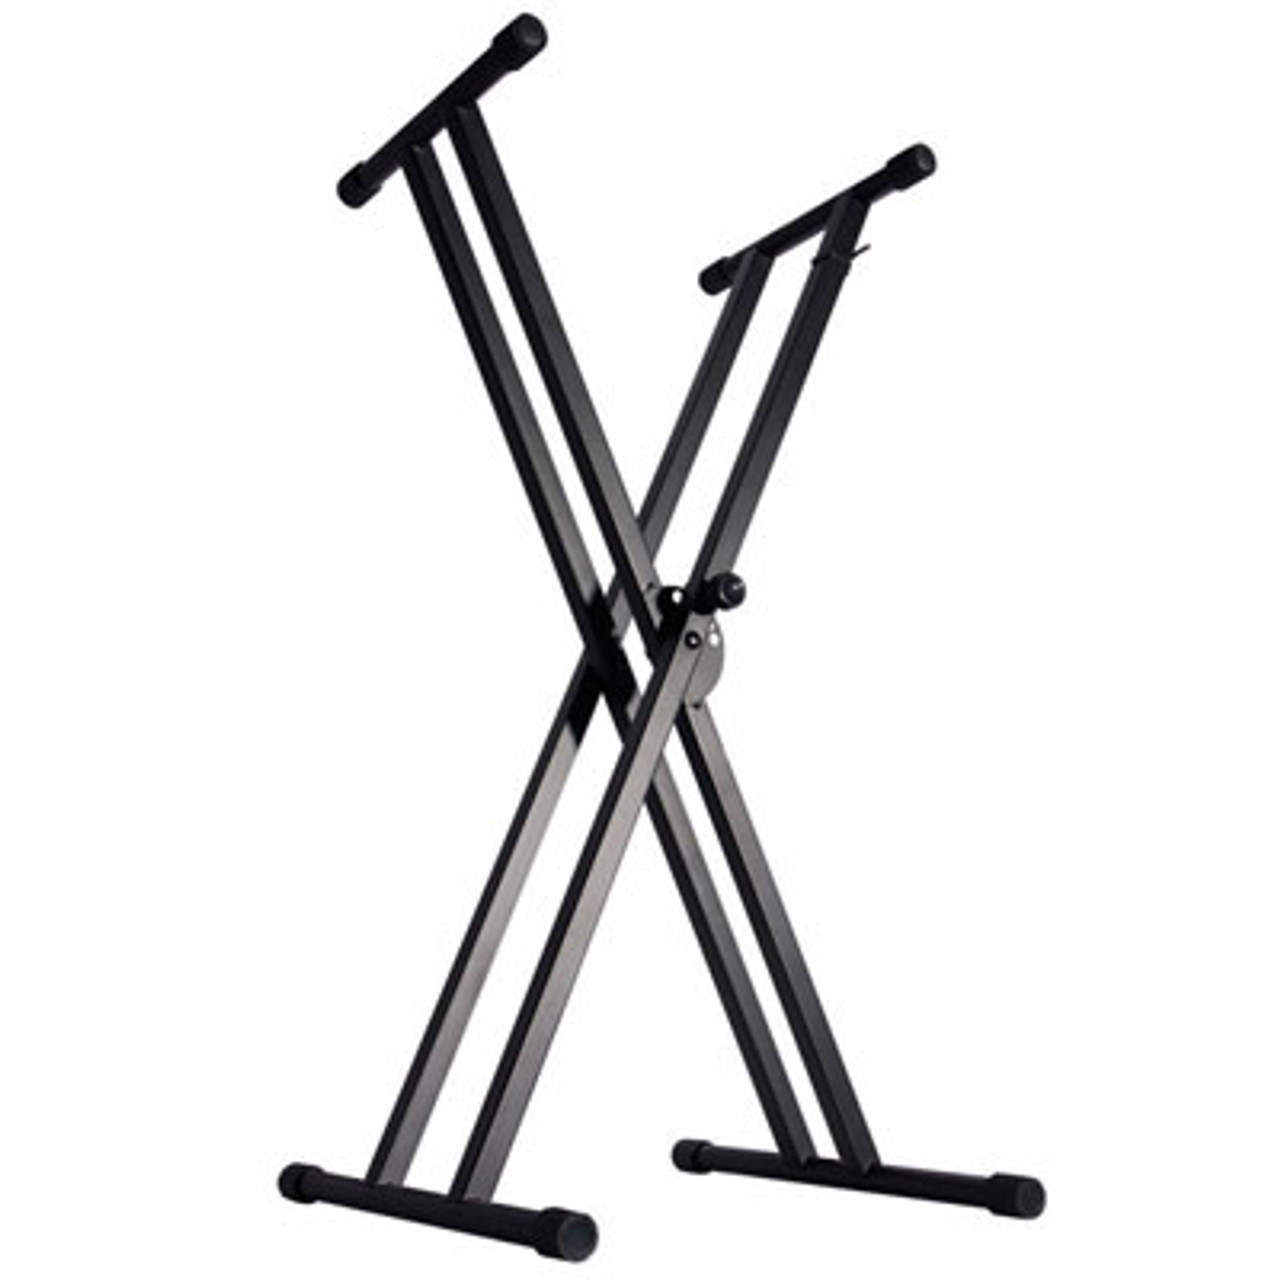 Keyboard Stands & Accessories